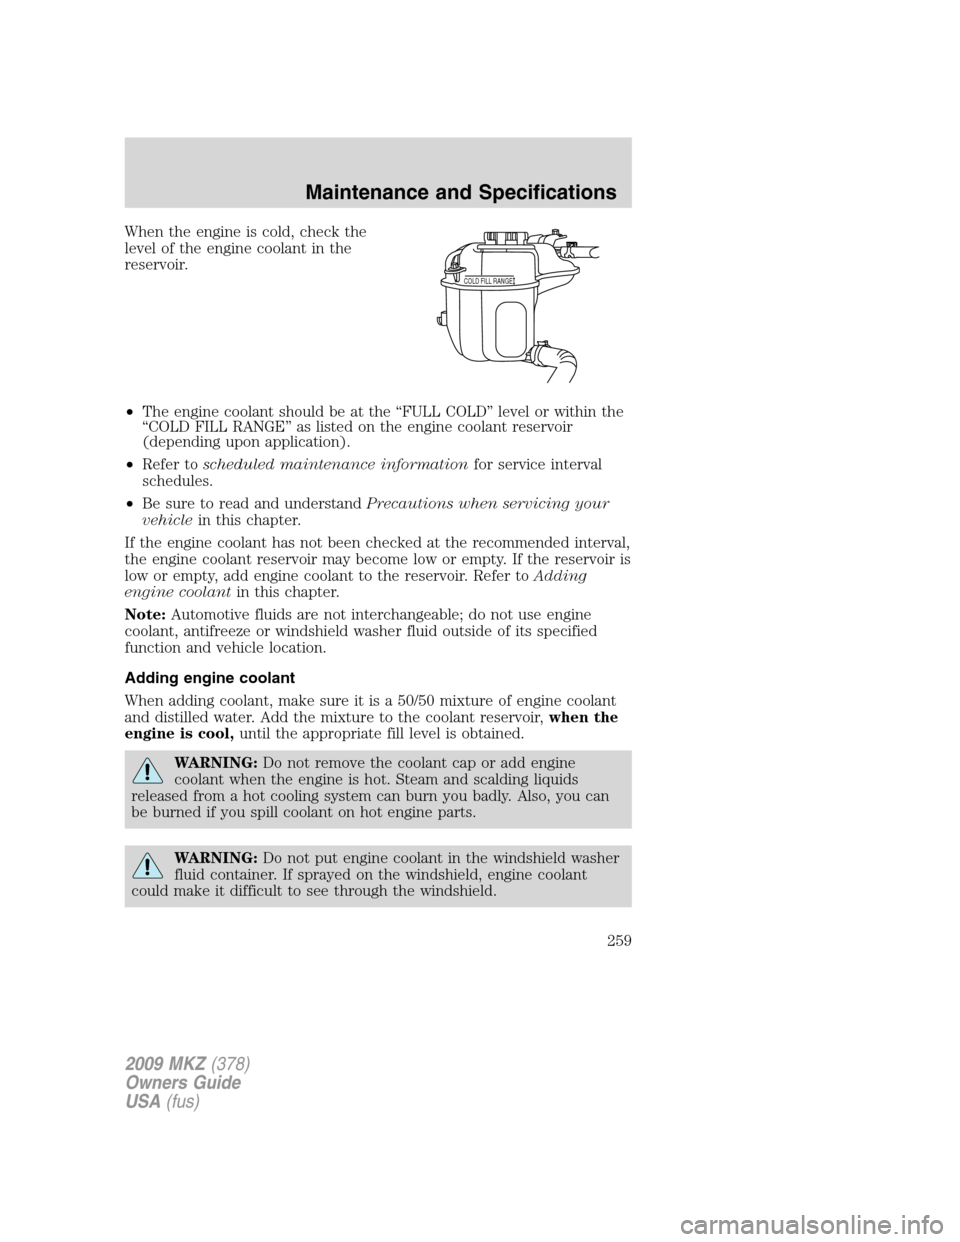 2009 lincoln mkz owners manual